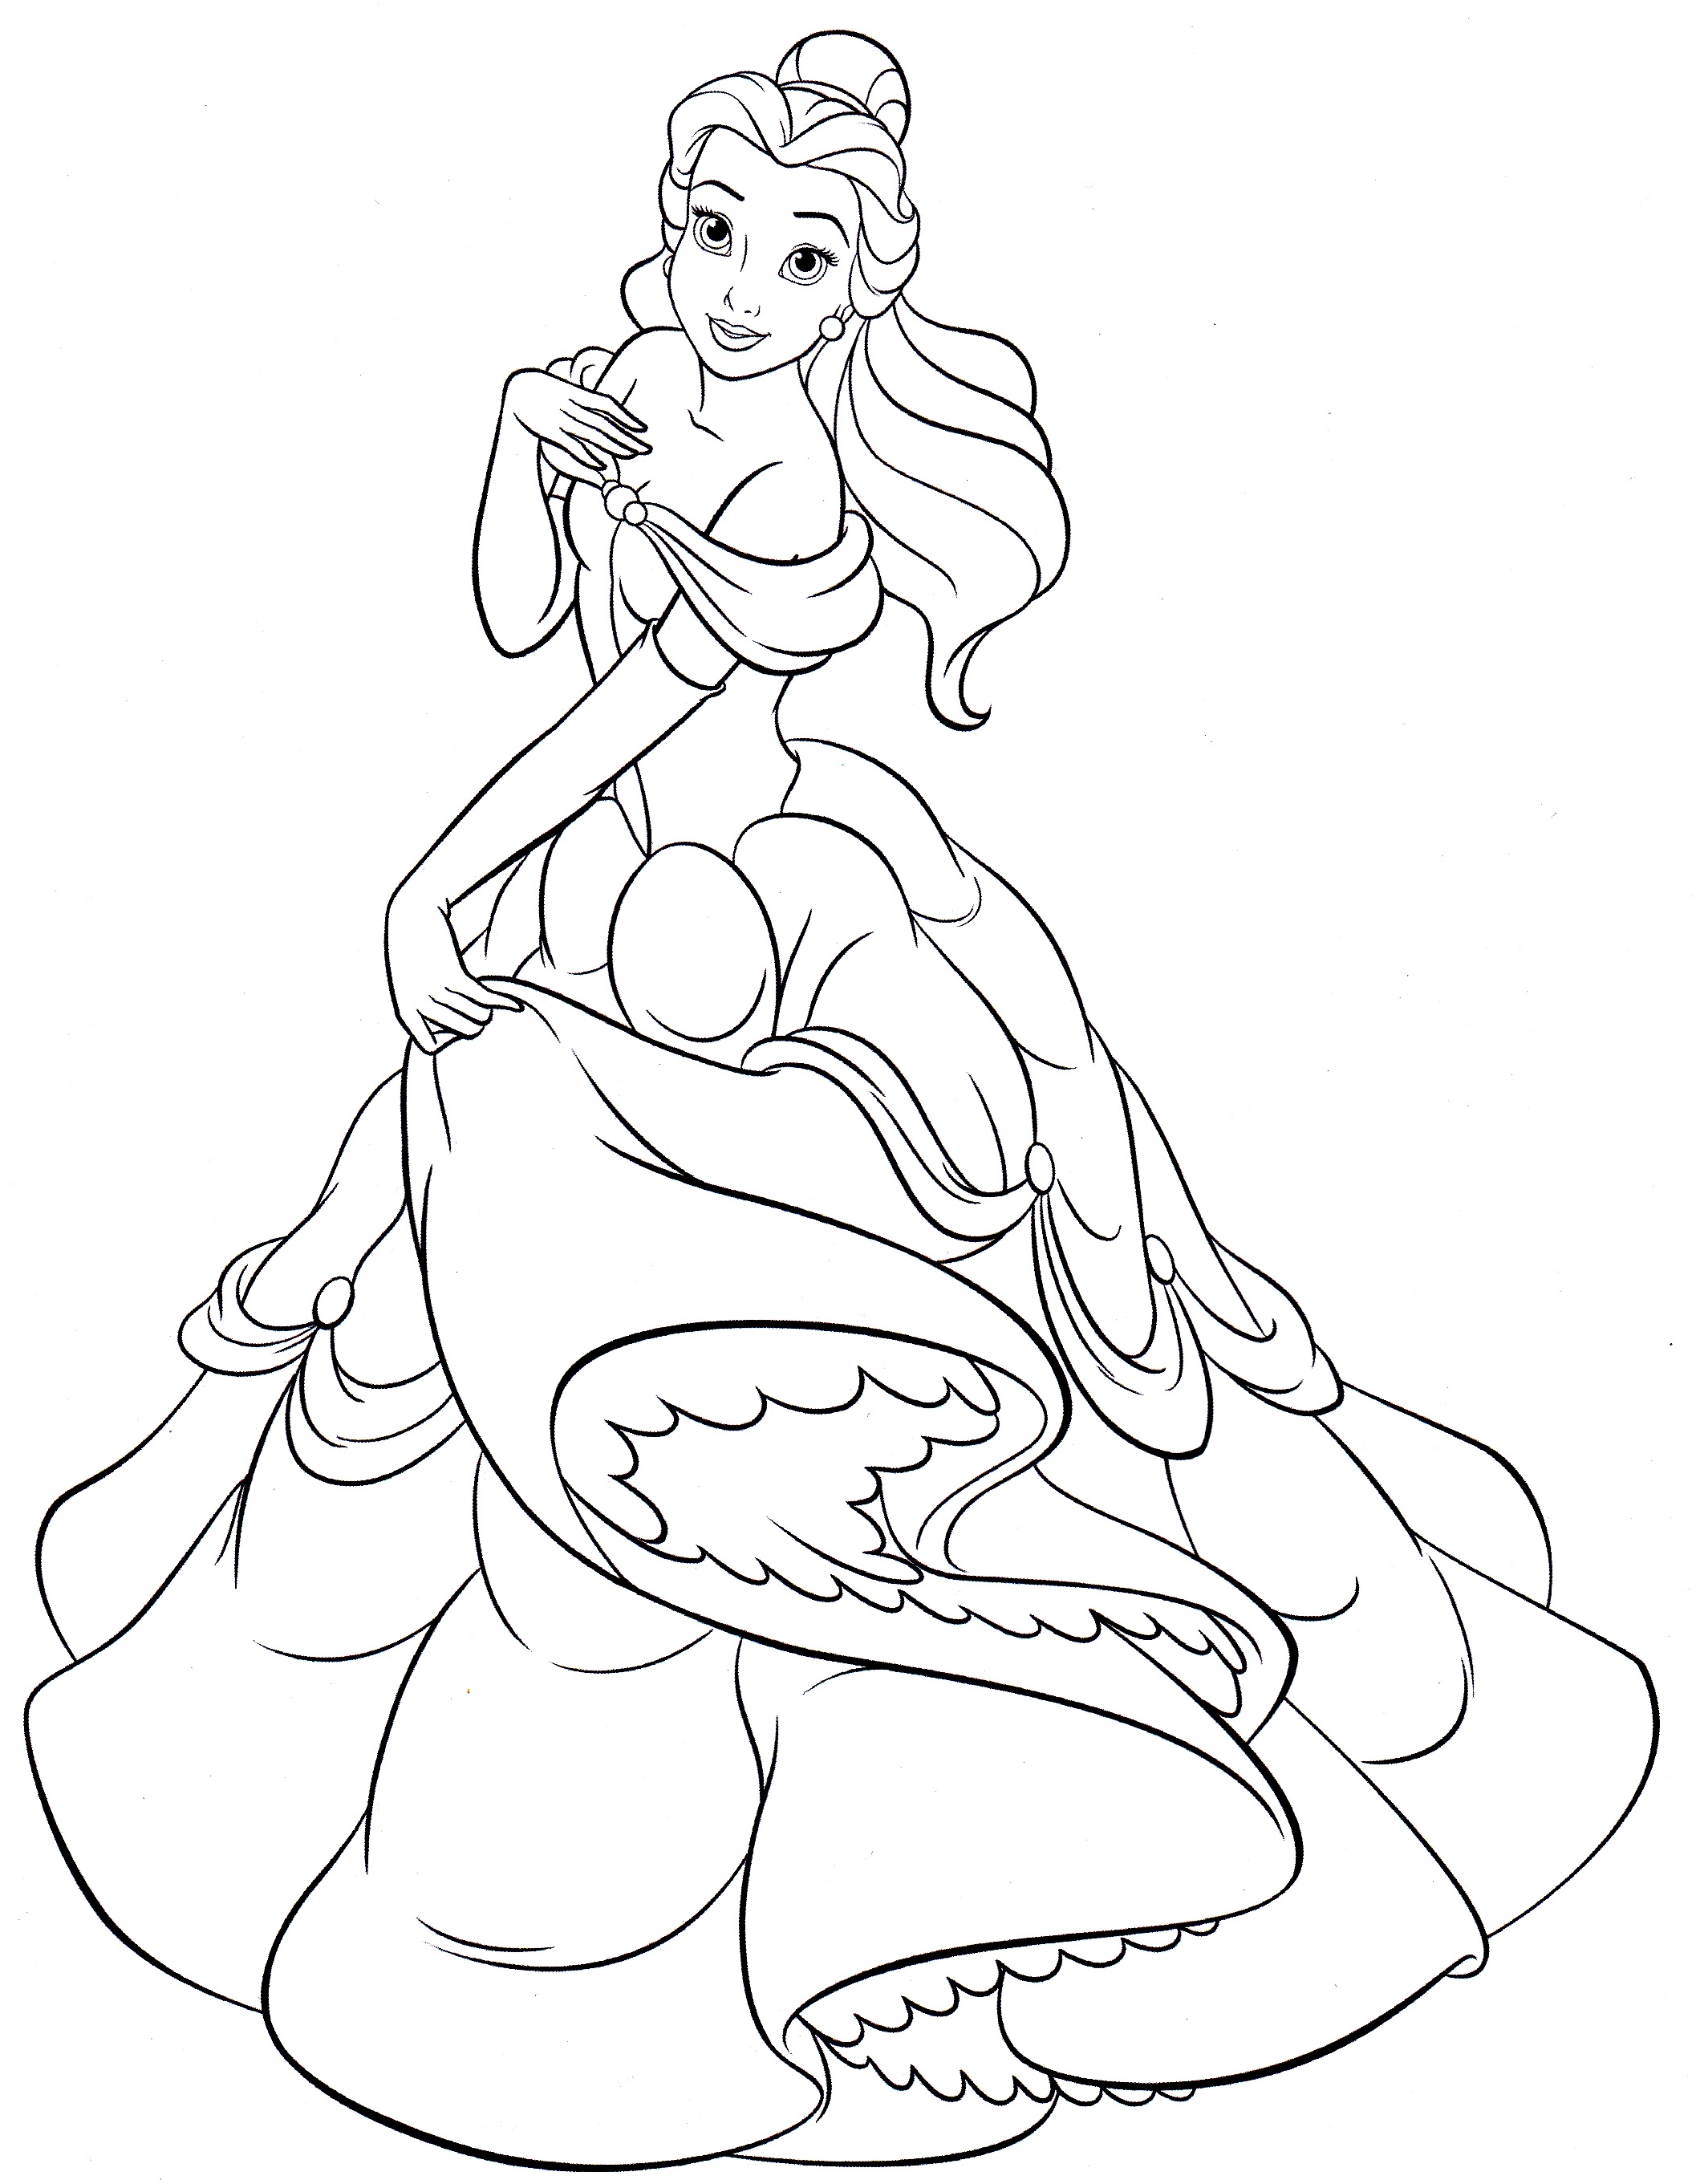 Belle Coloring Page - monesmapyrene.com | 2722x2119